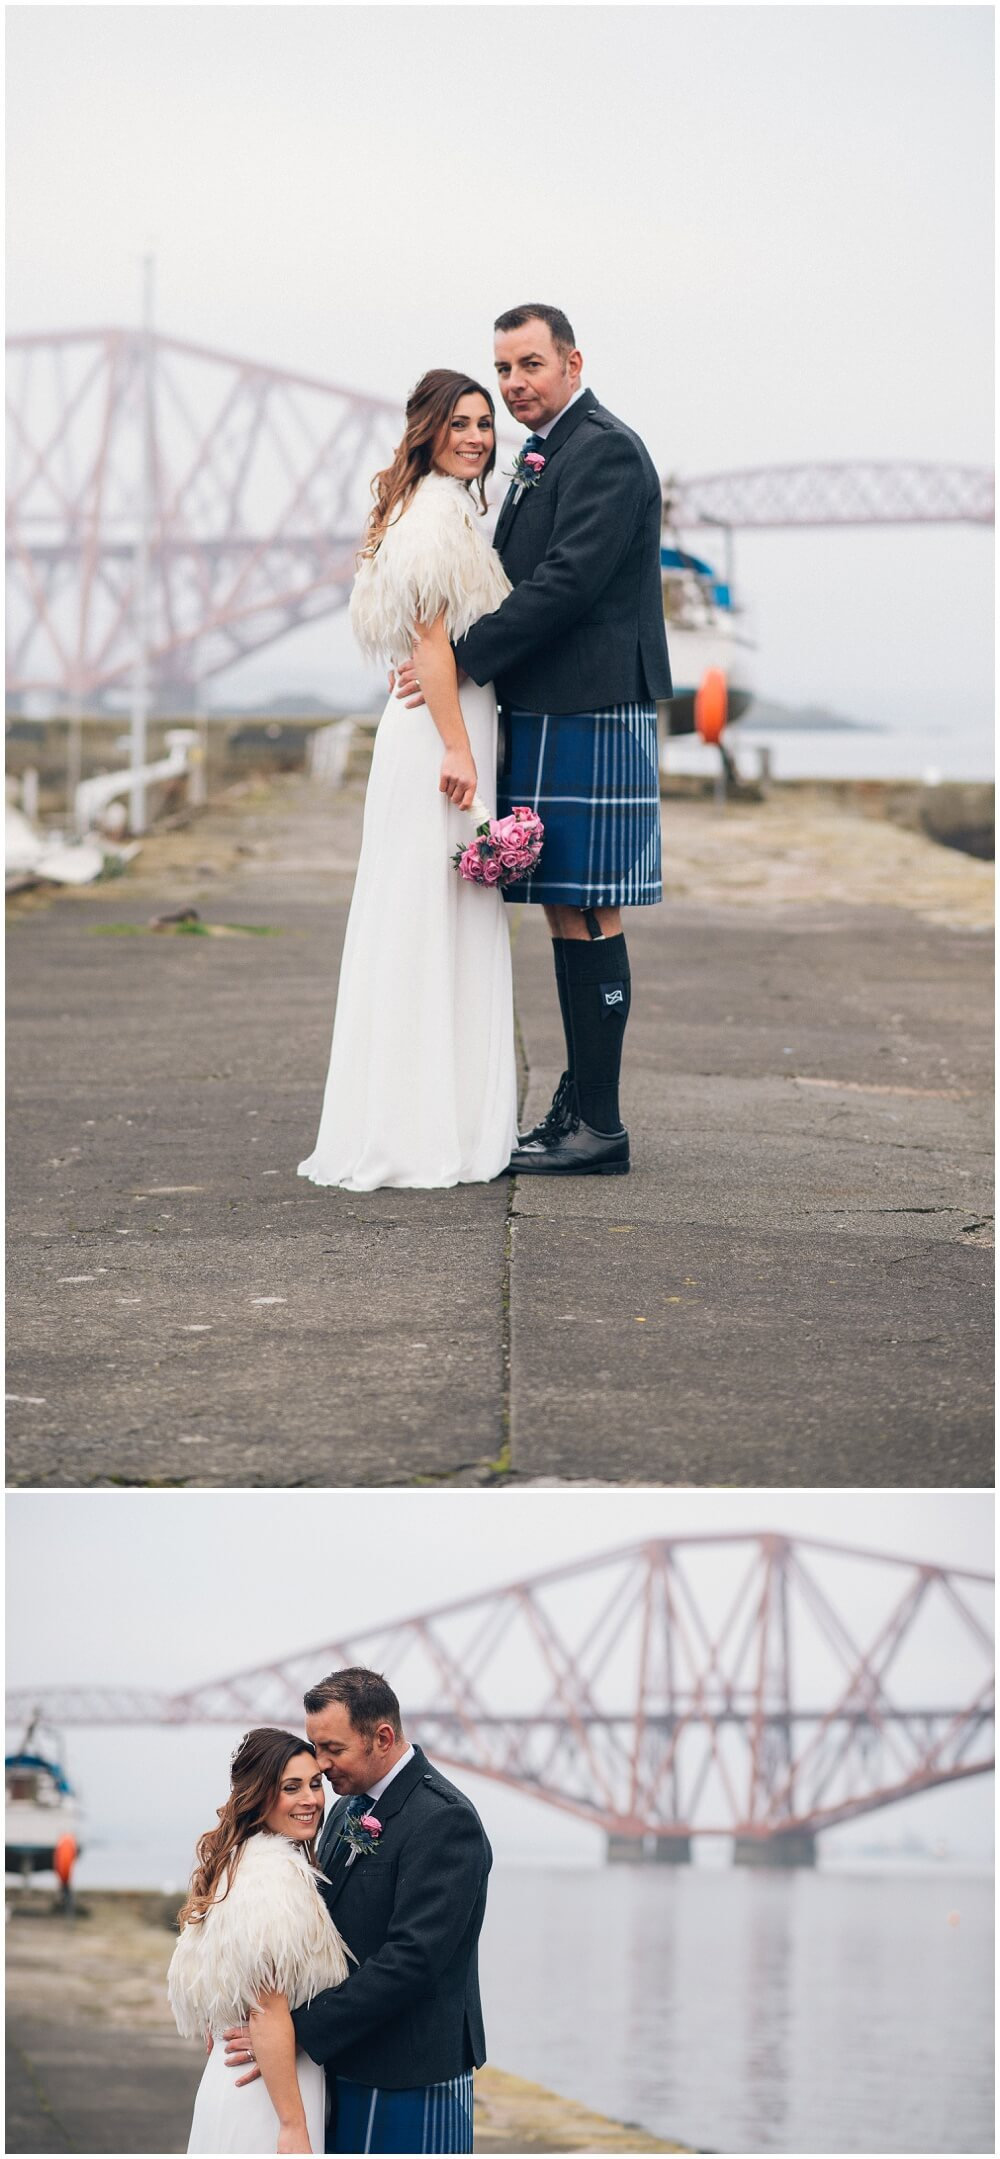 Orocco Pier, Wedding, Bride, Groom, Kilt, Scotland, South Queensferry, Forth, Railway bridge, photography, photographer, blog, love, Mark McCue, MMc Photography, www.mmcphotos.co.uk, Shotts, Fauldhouse, beach, harbour, Orocco Pier wedding